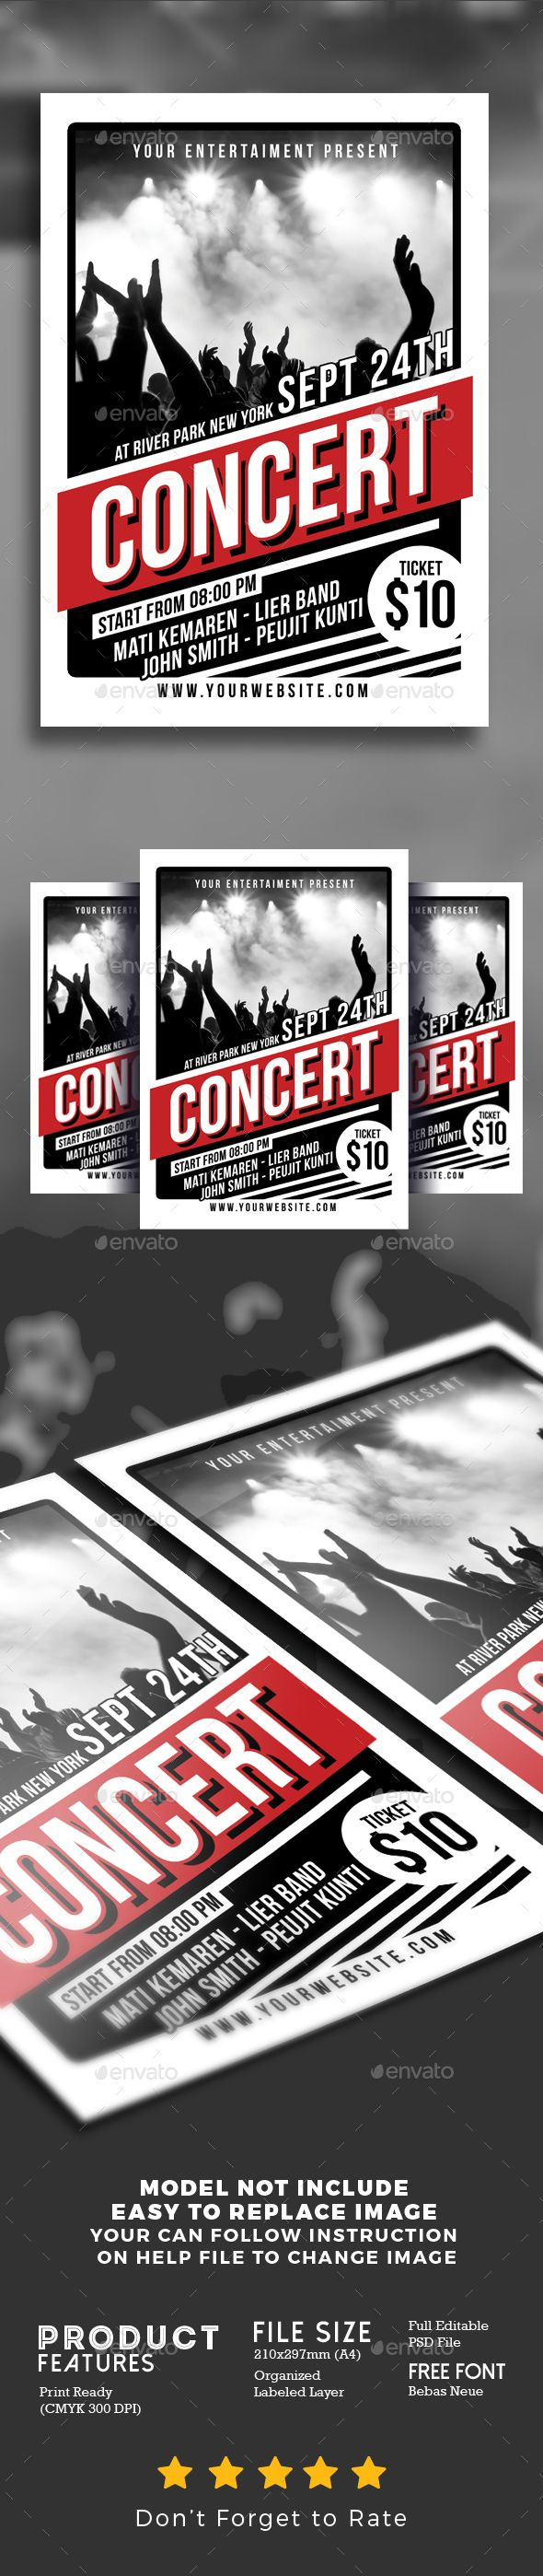 Poster design ideas pinterest - Music Concert Flyer Poster